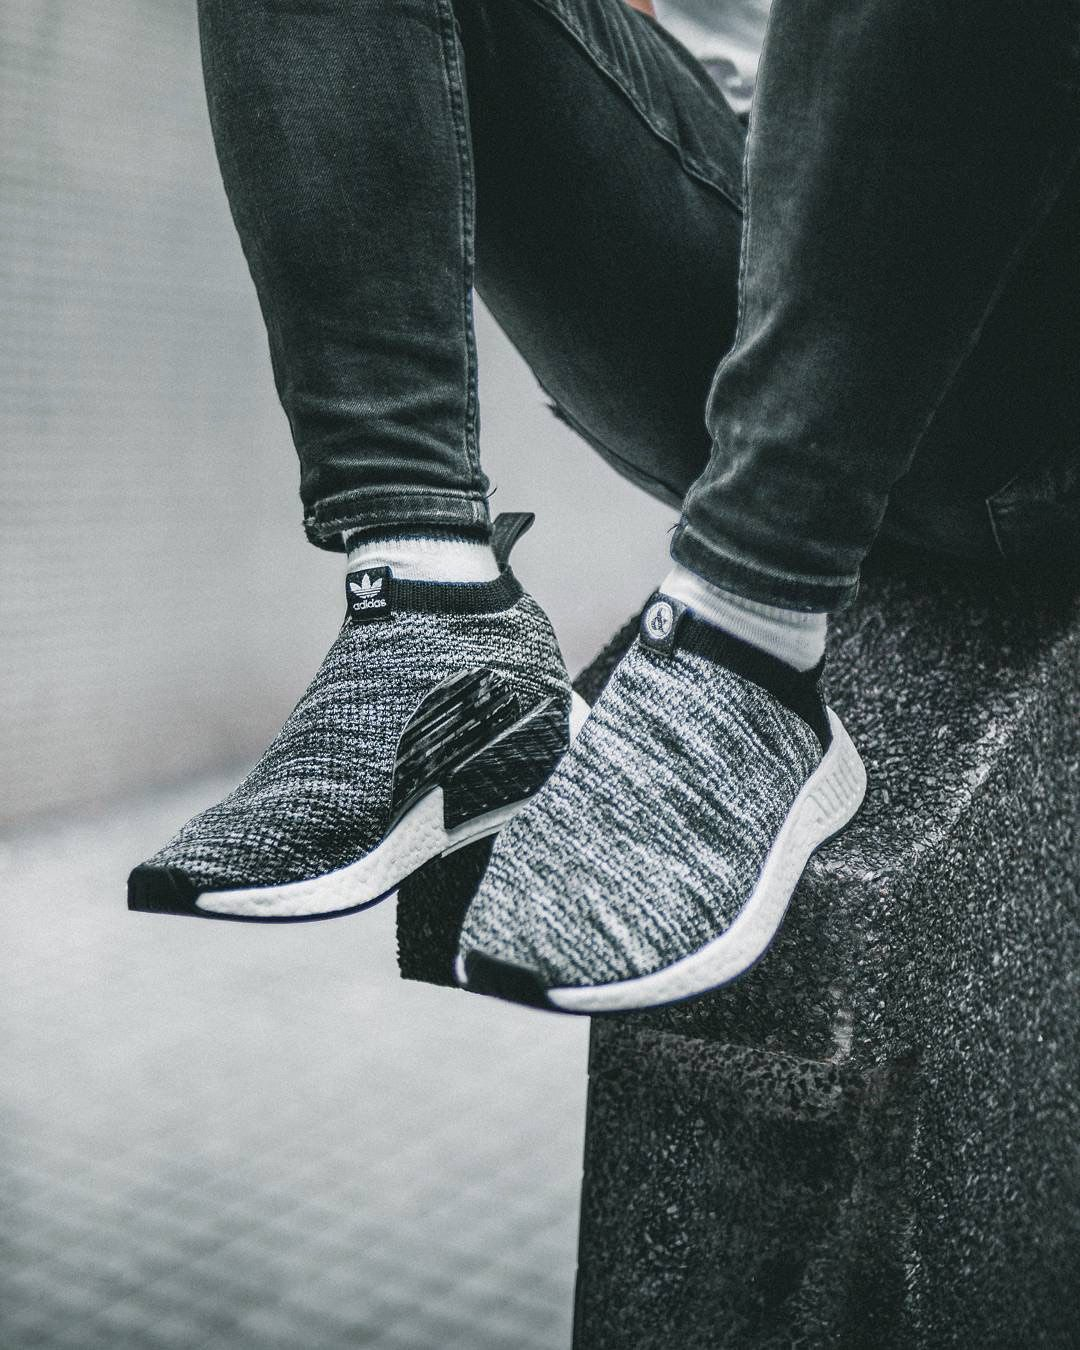 best service 60fba 055a6 Preview: adidas NMD City Sock 2 PK x United Arrows & Sons ...